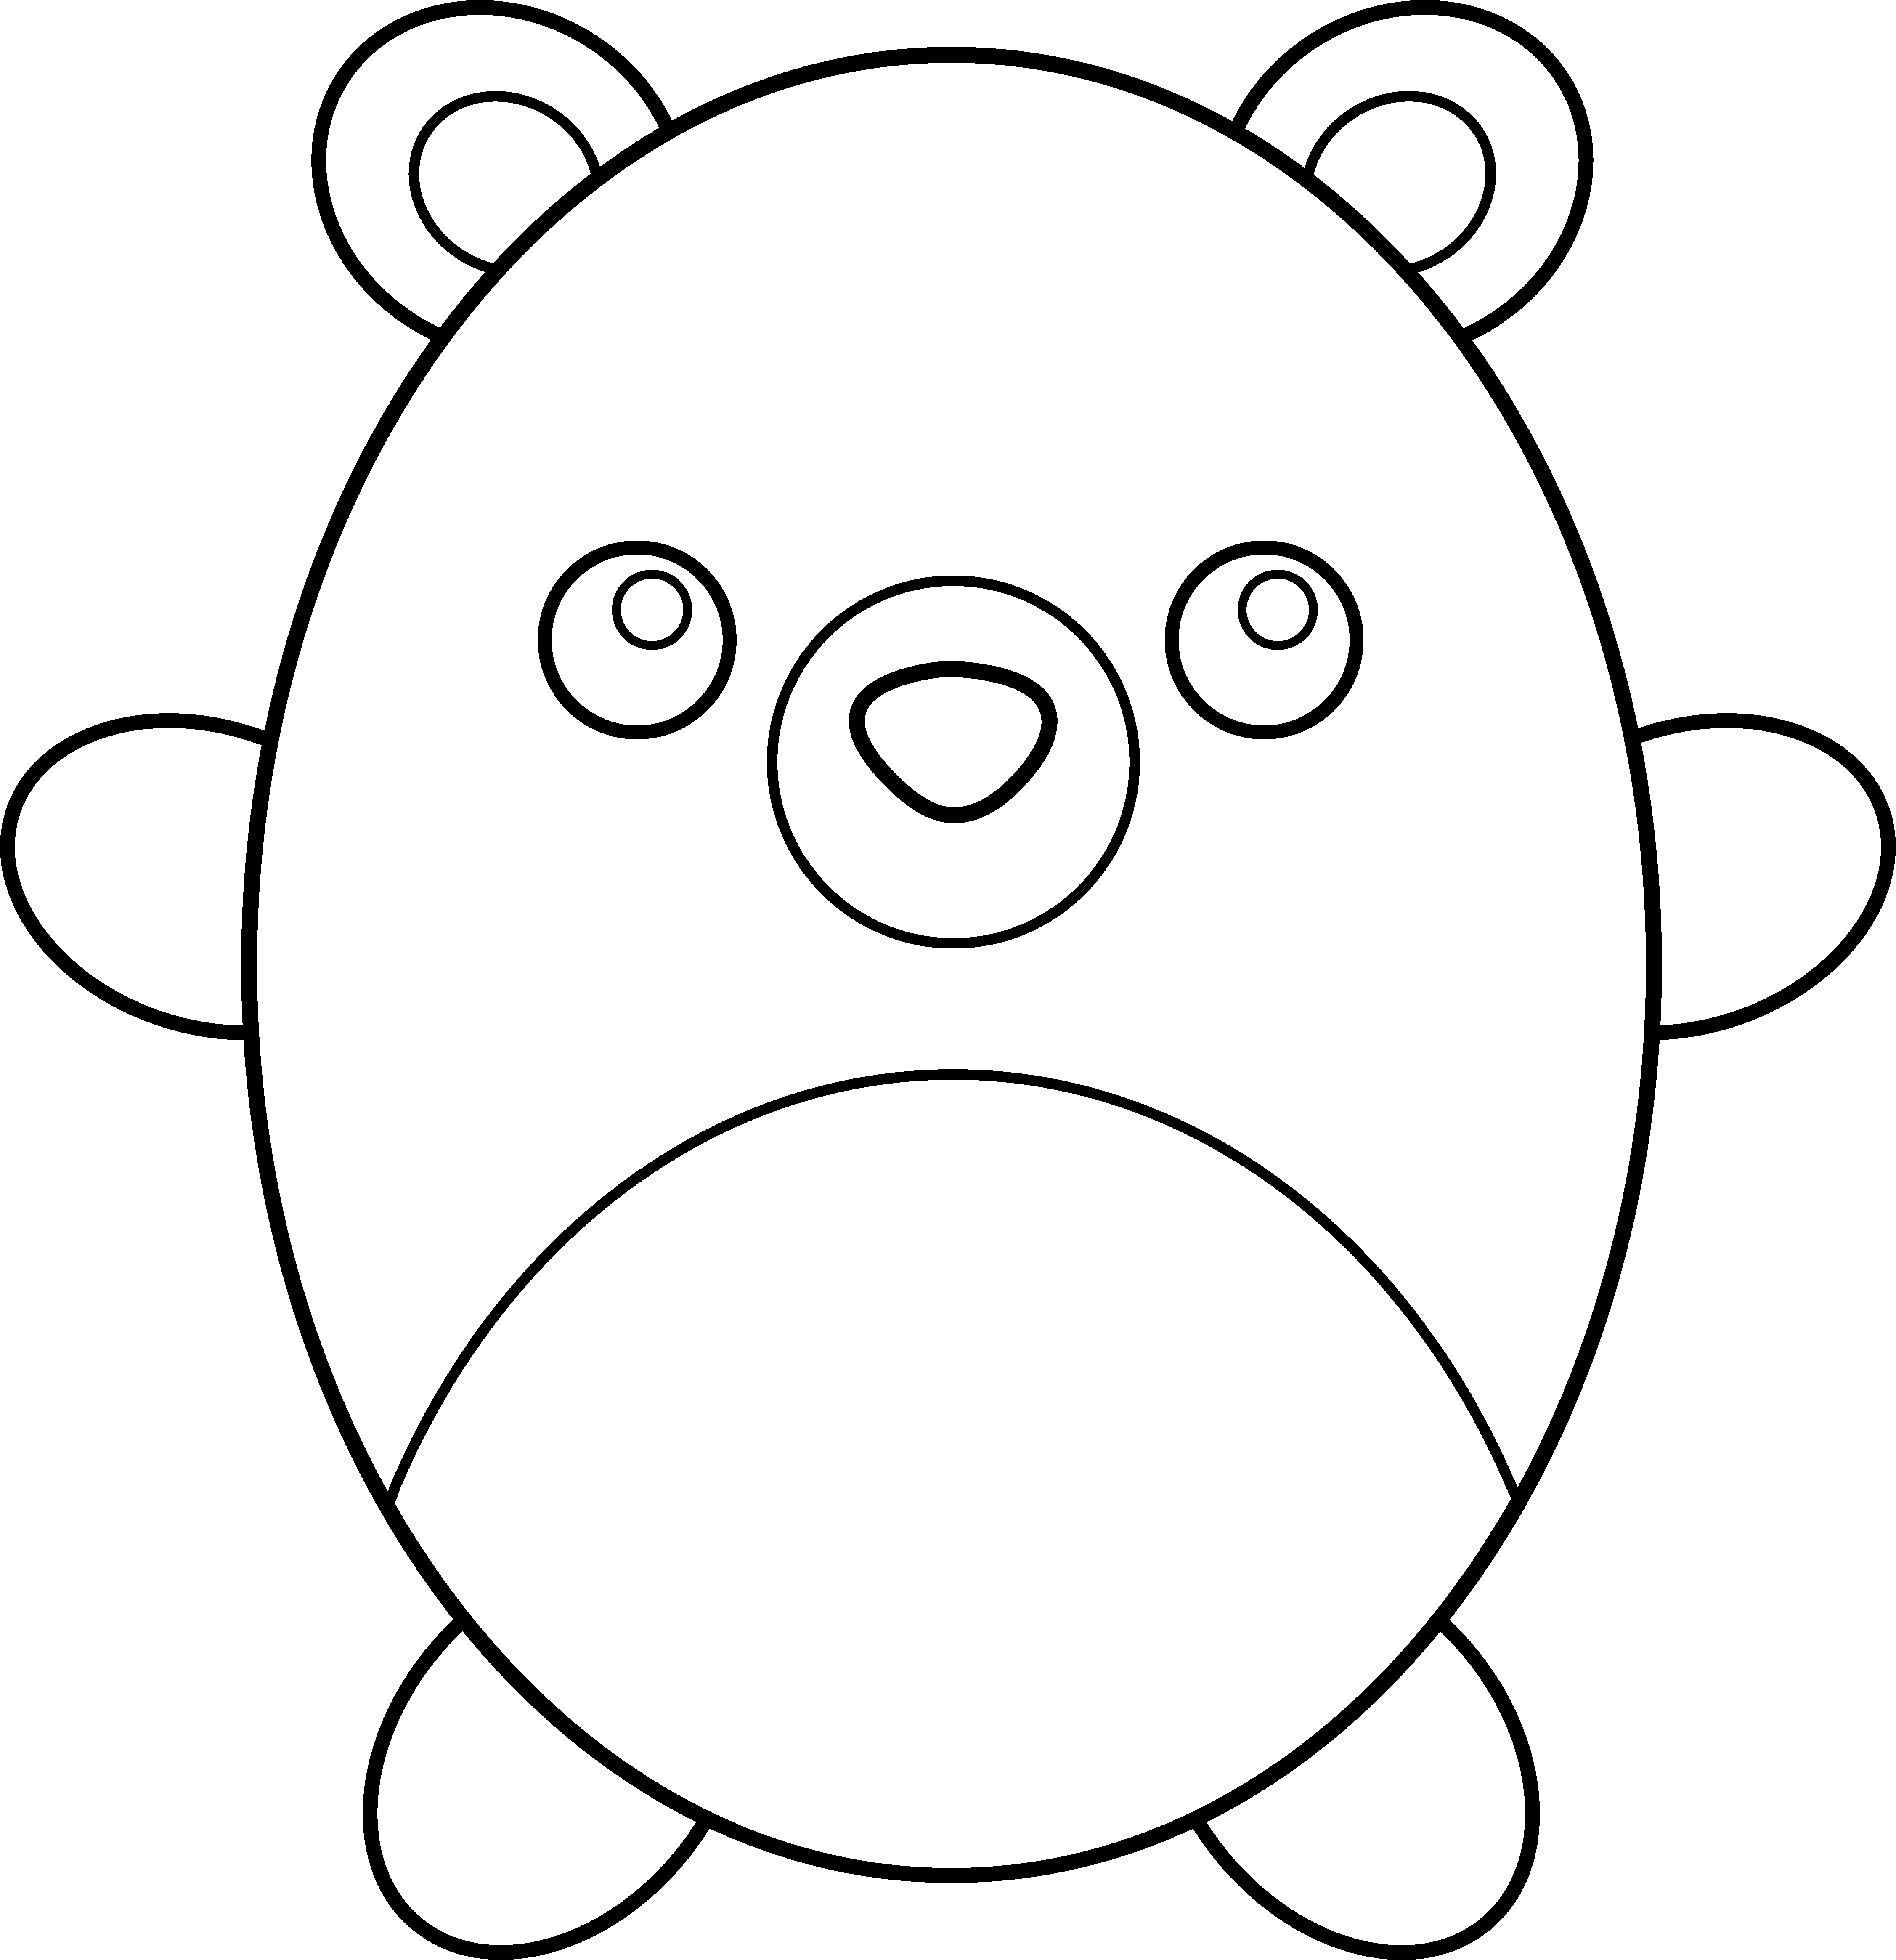 clipart royalty free Cute panda free images. Baby bear clipart black and white